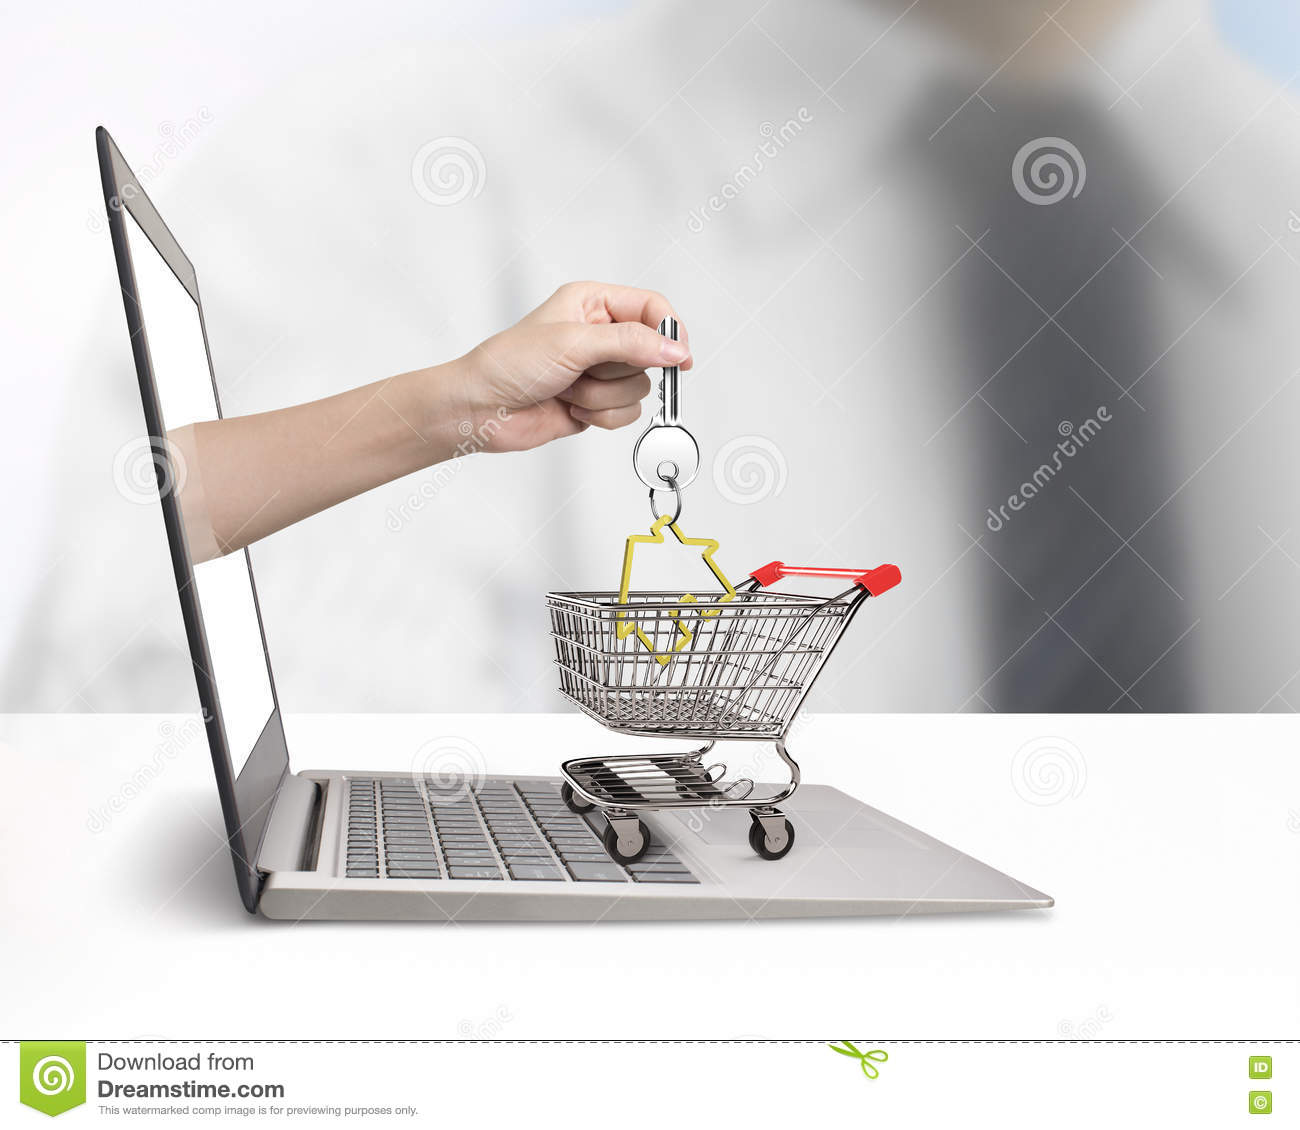 Download Hand From Laptop Screen Taking House Key In Shopping Cart Stock Image - Image of real, exterior: 78917883